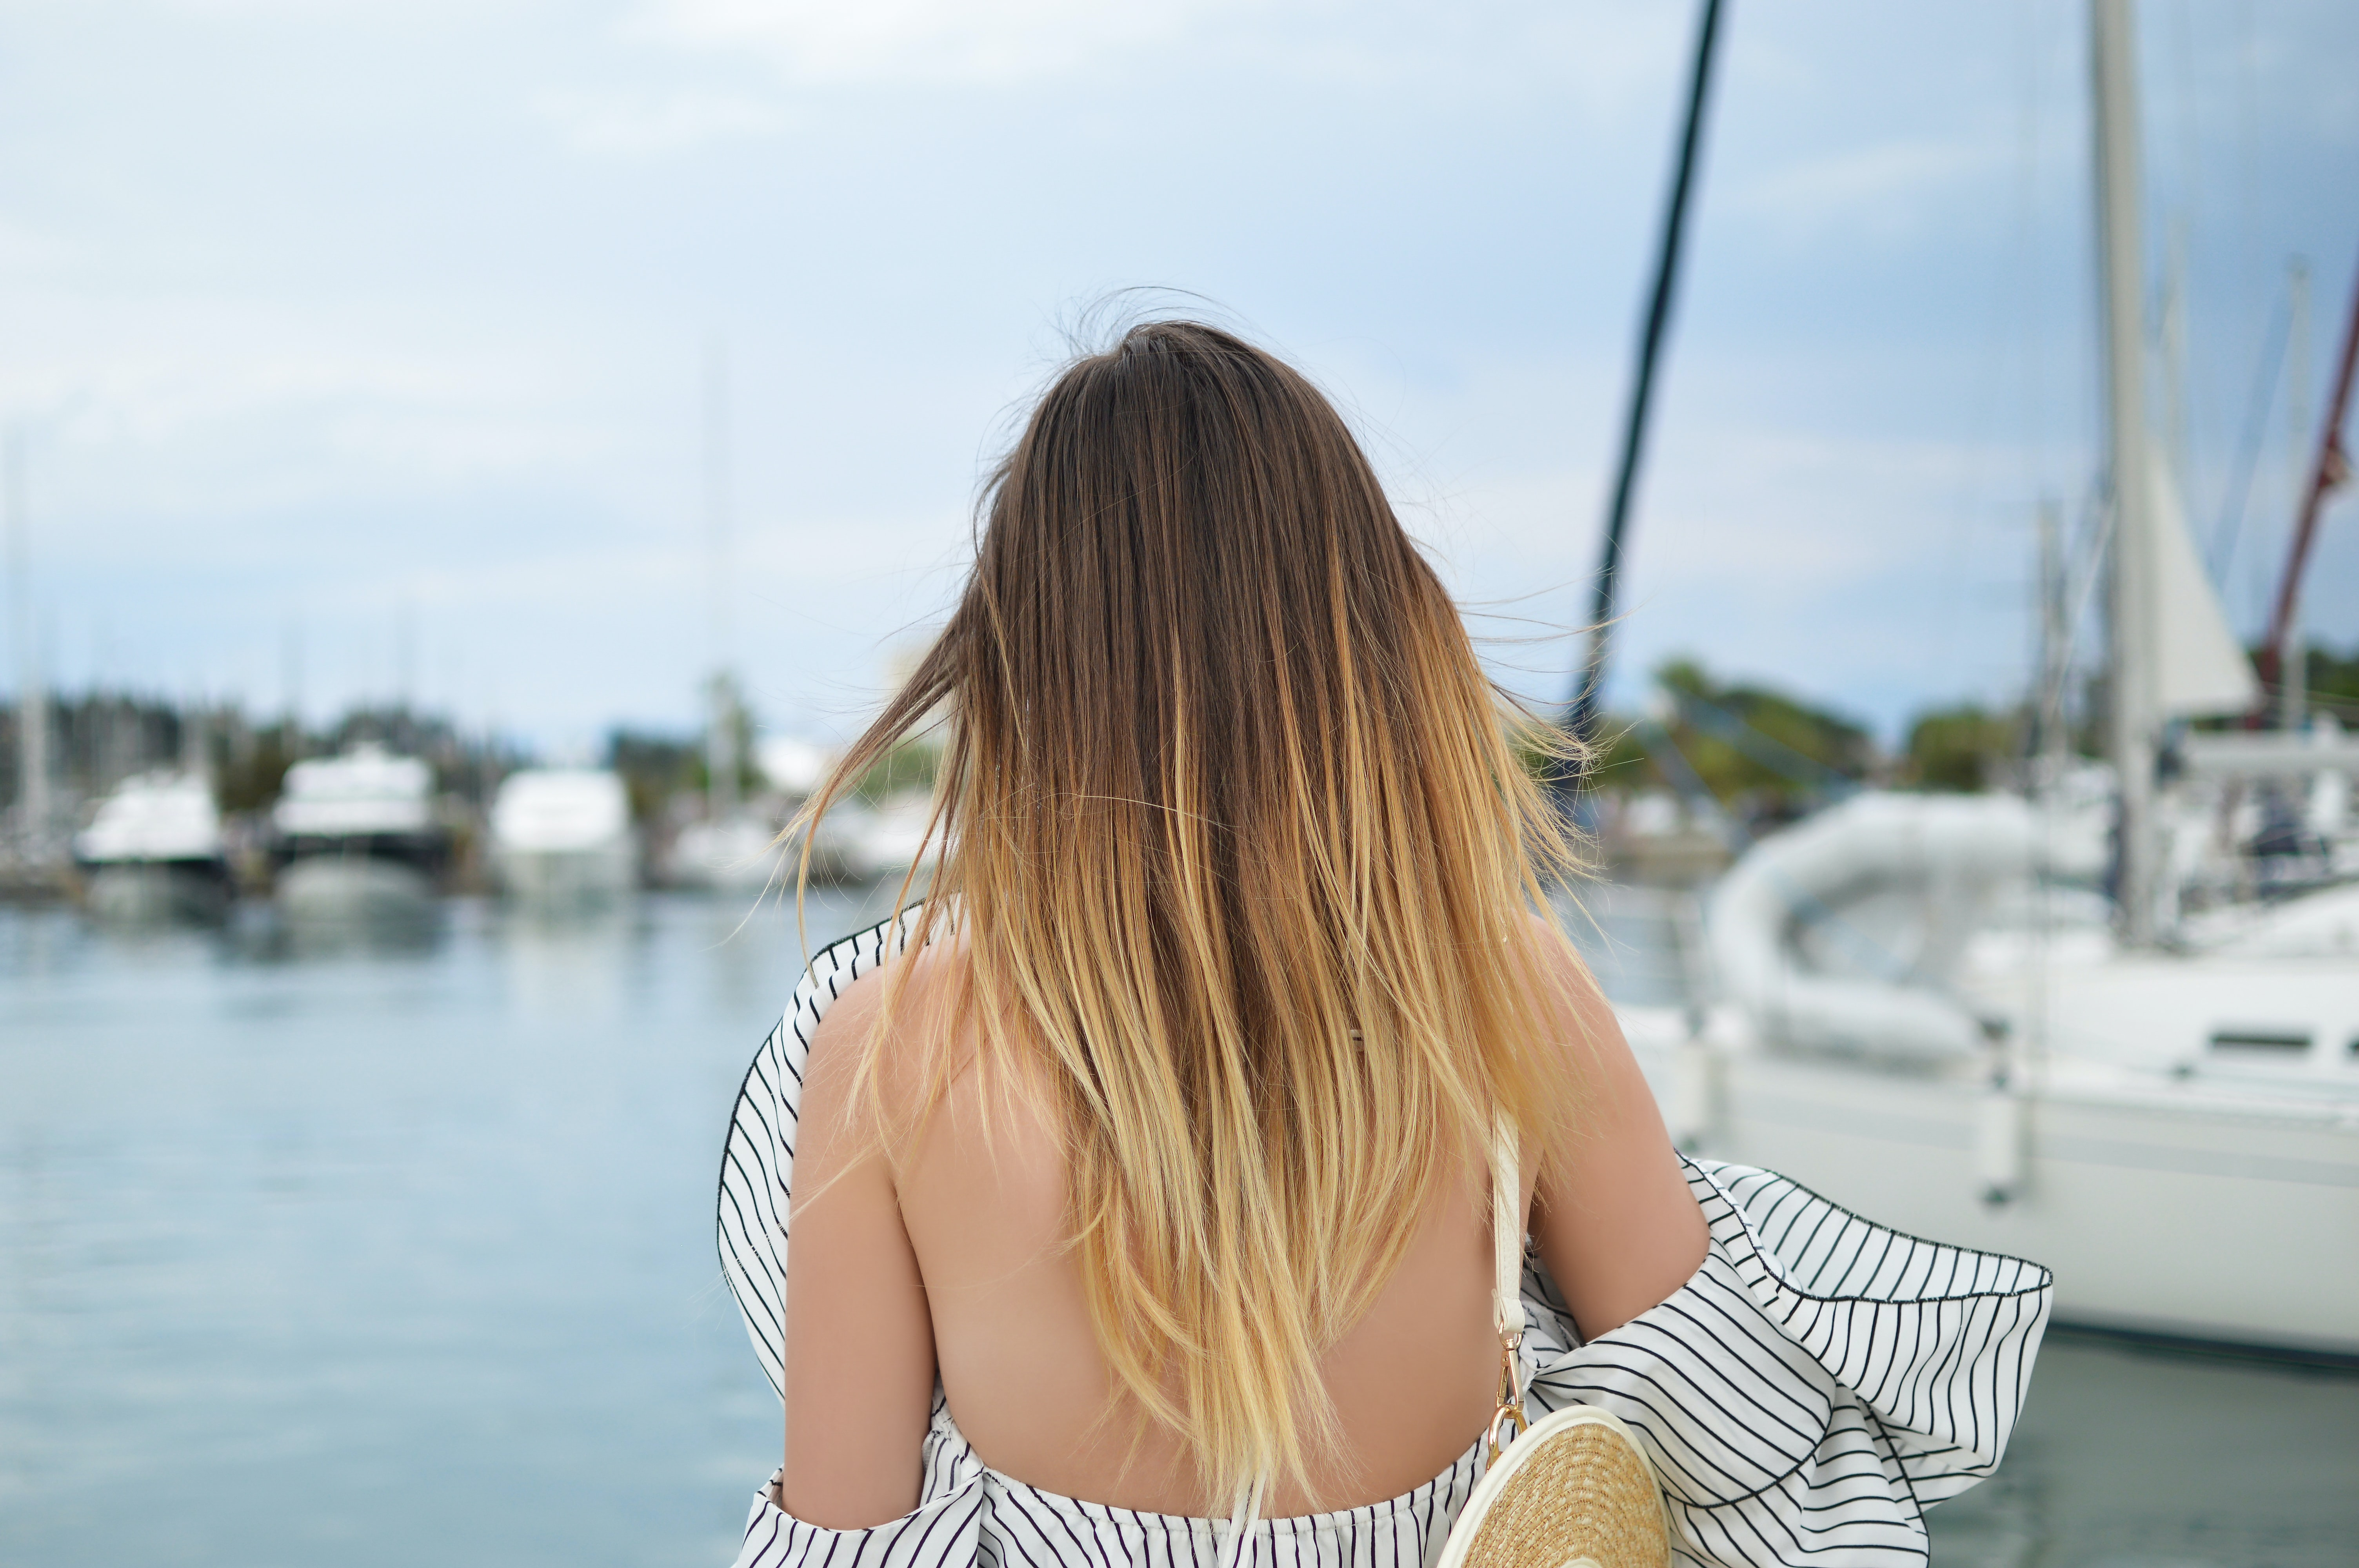 Standing behind a woman in a chic striped dress near yachts